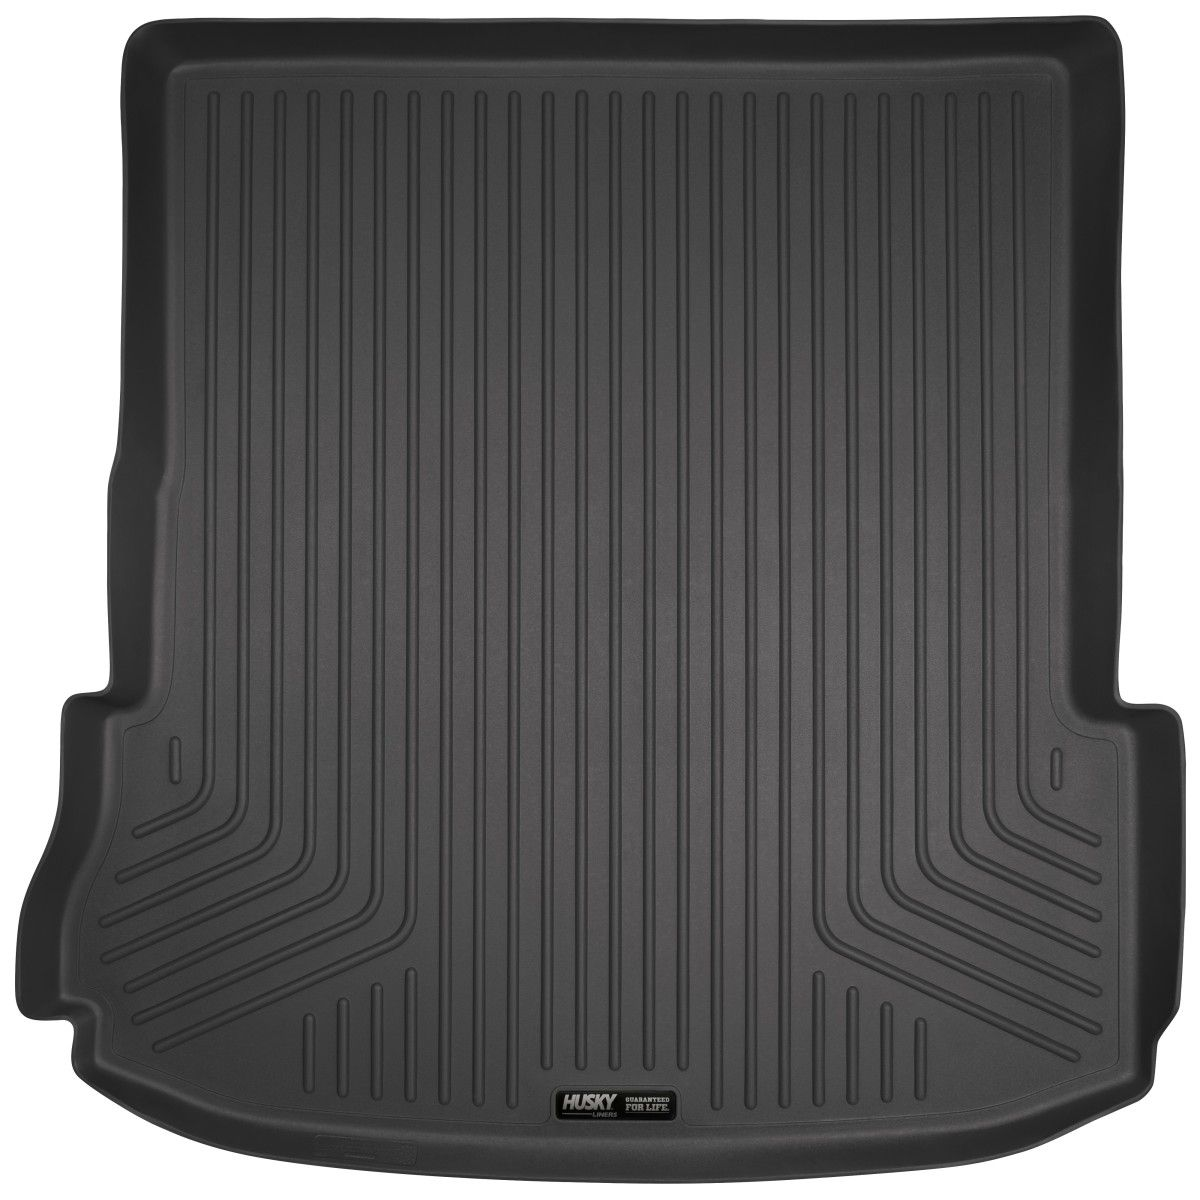 Husky Liners Fits 2018-19 Lincoln Navigator X-act Contour 2nd Seat Floor Mat